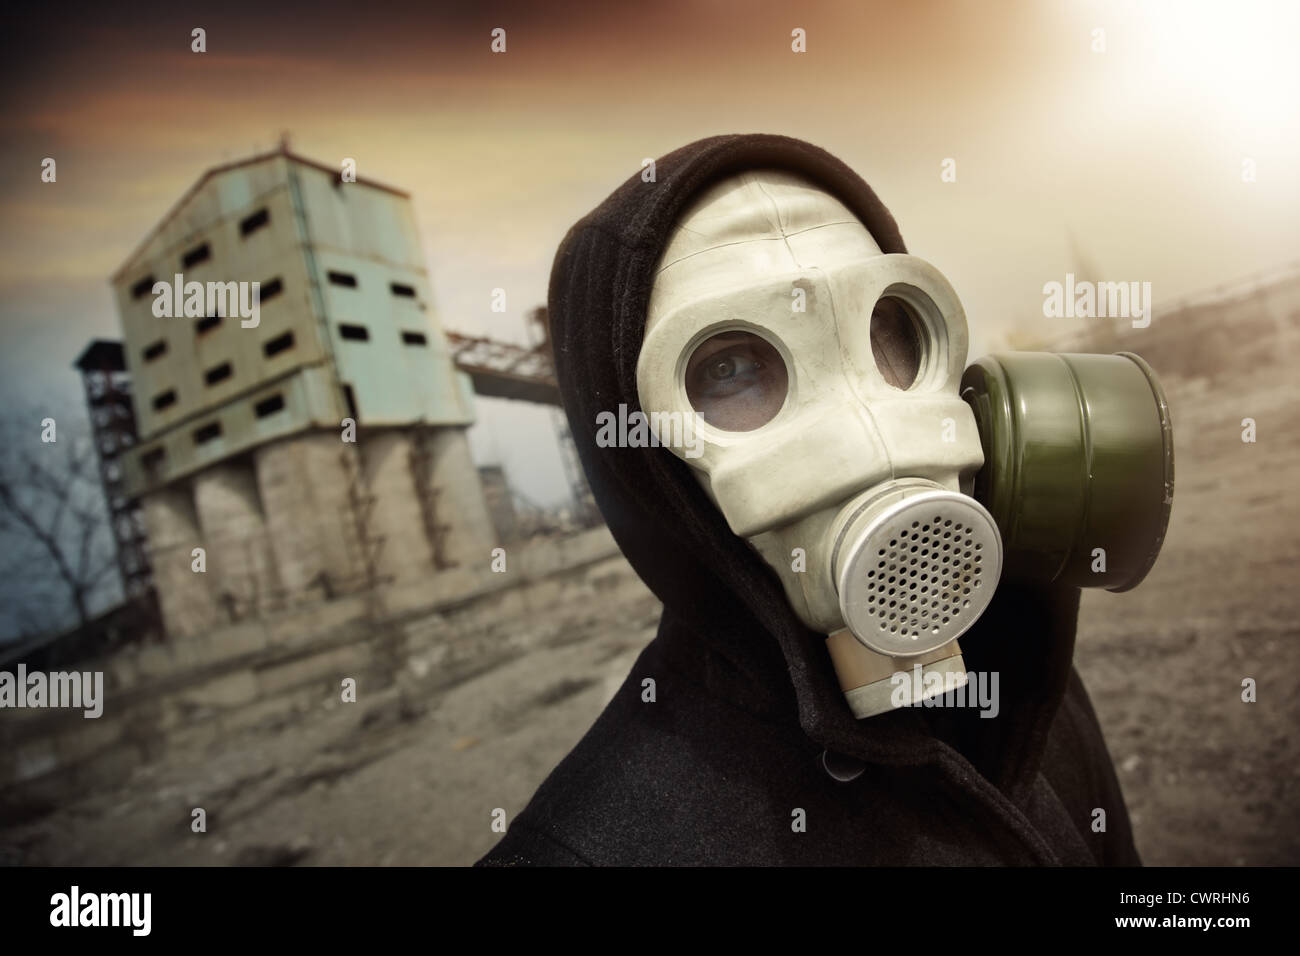 Man in protective gas mask near the industrial plant during radioactive sunset. Artistic colors and grain added - Stock Image